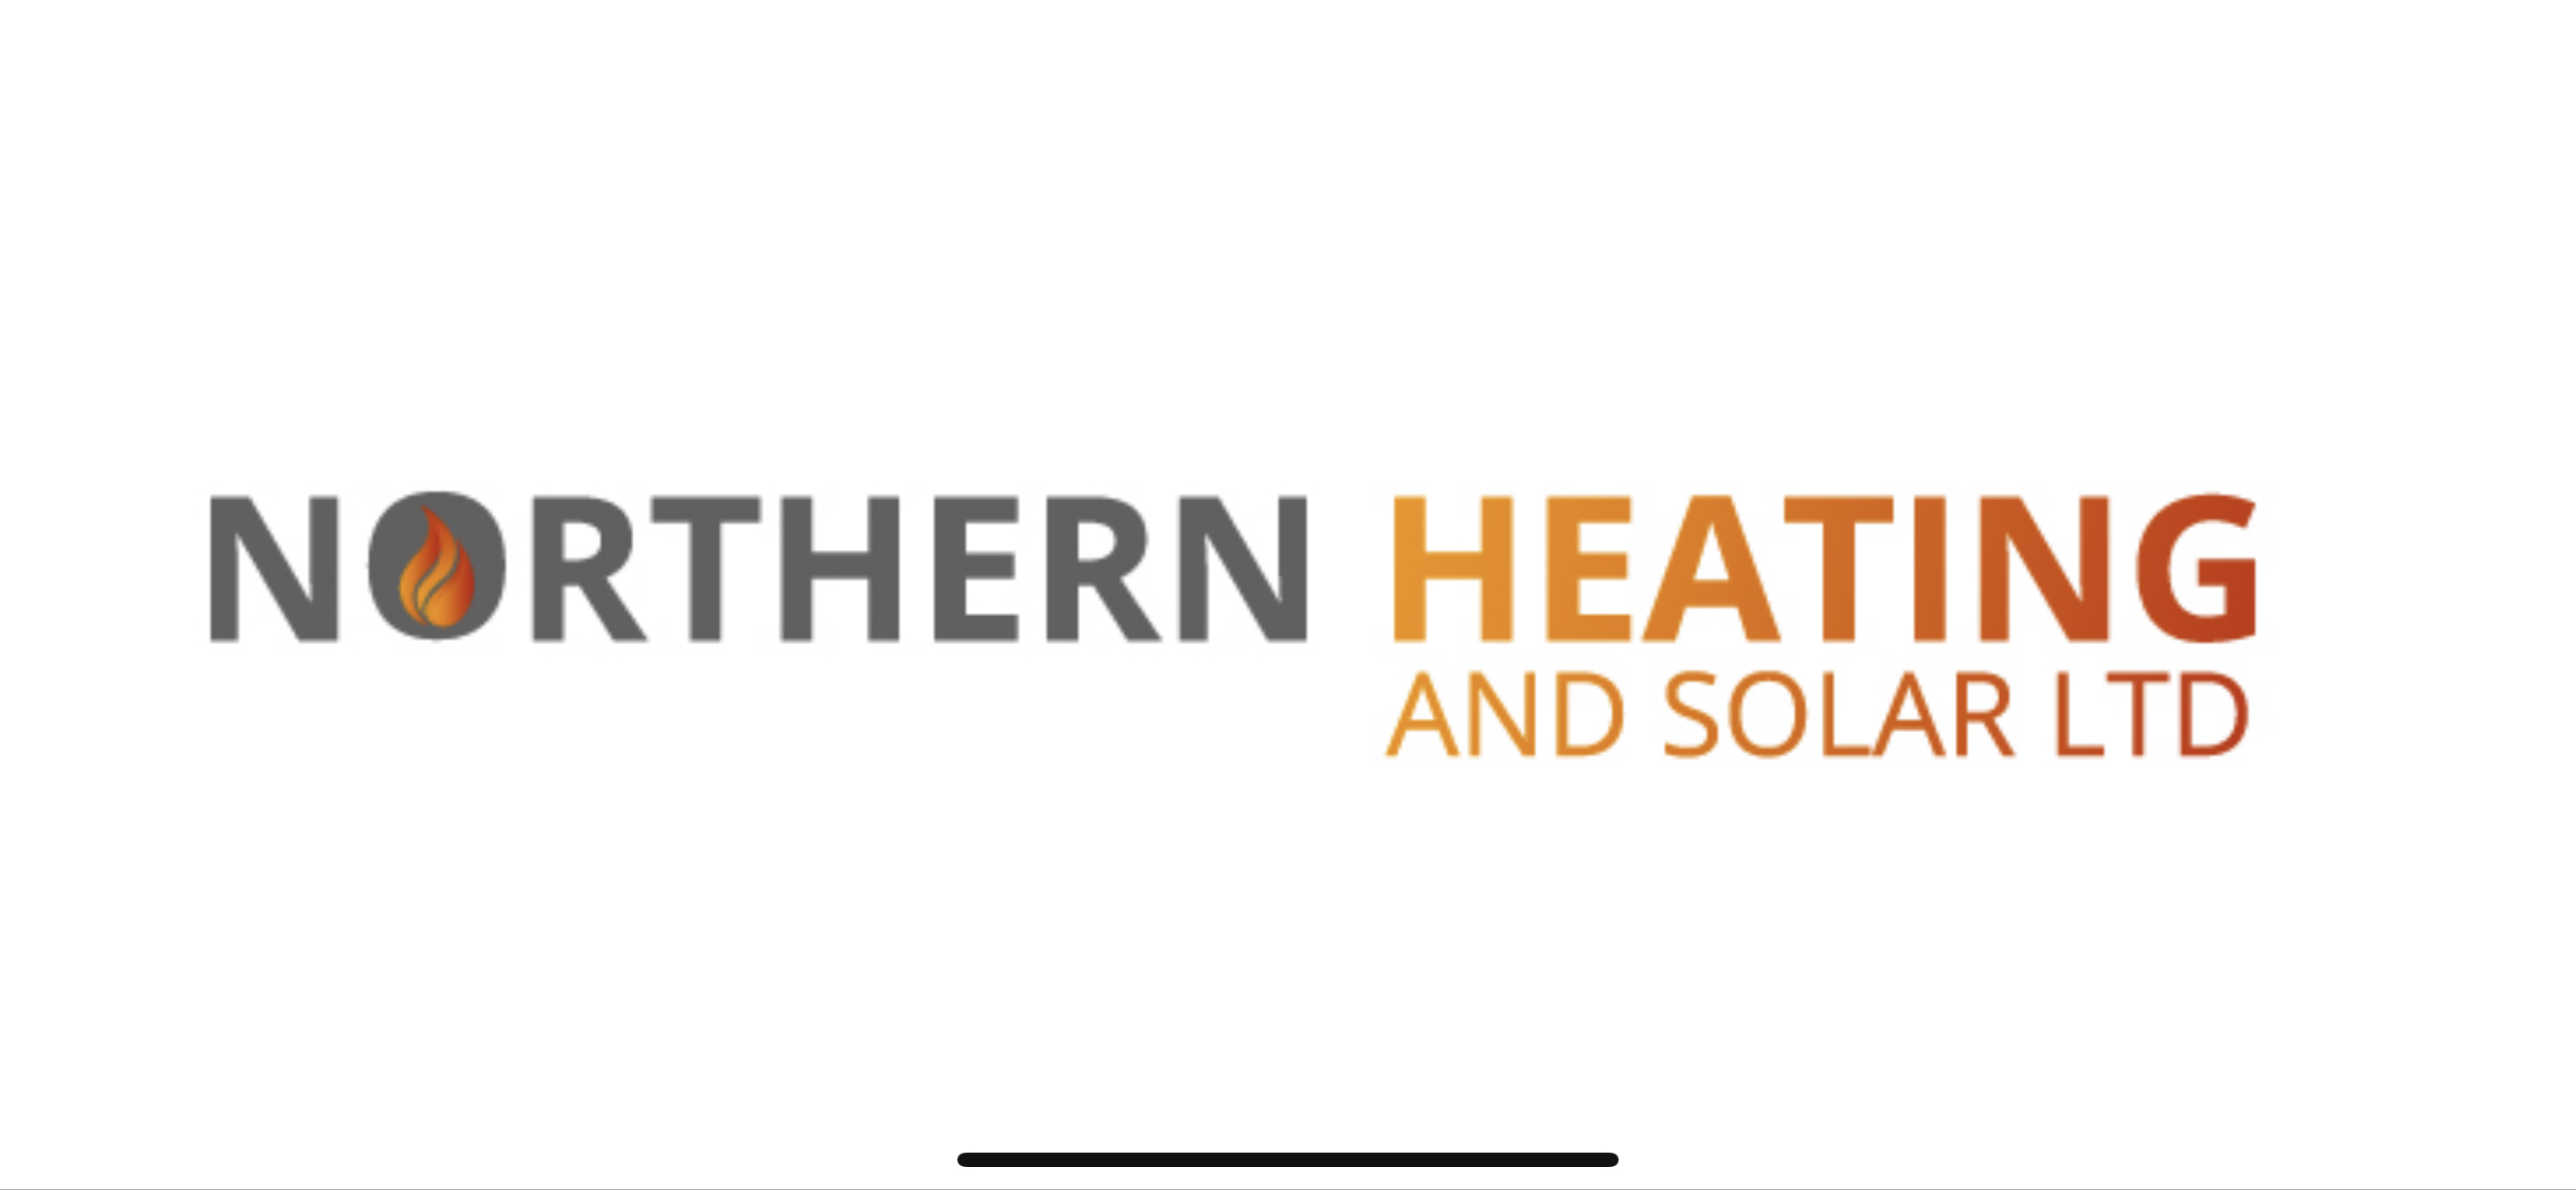 Northern heating and solar Ltd Verified Logo